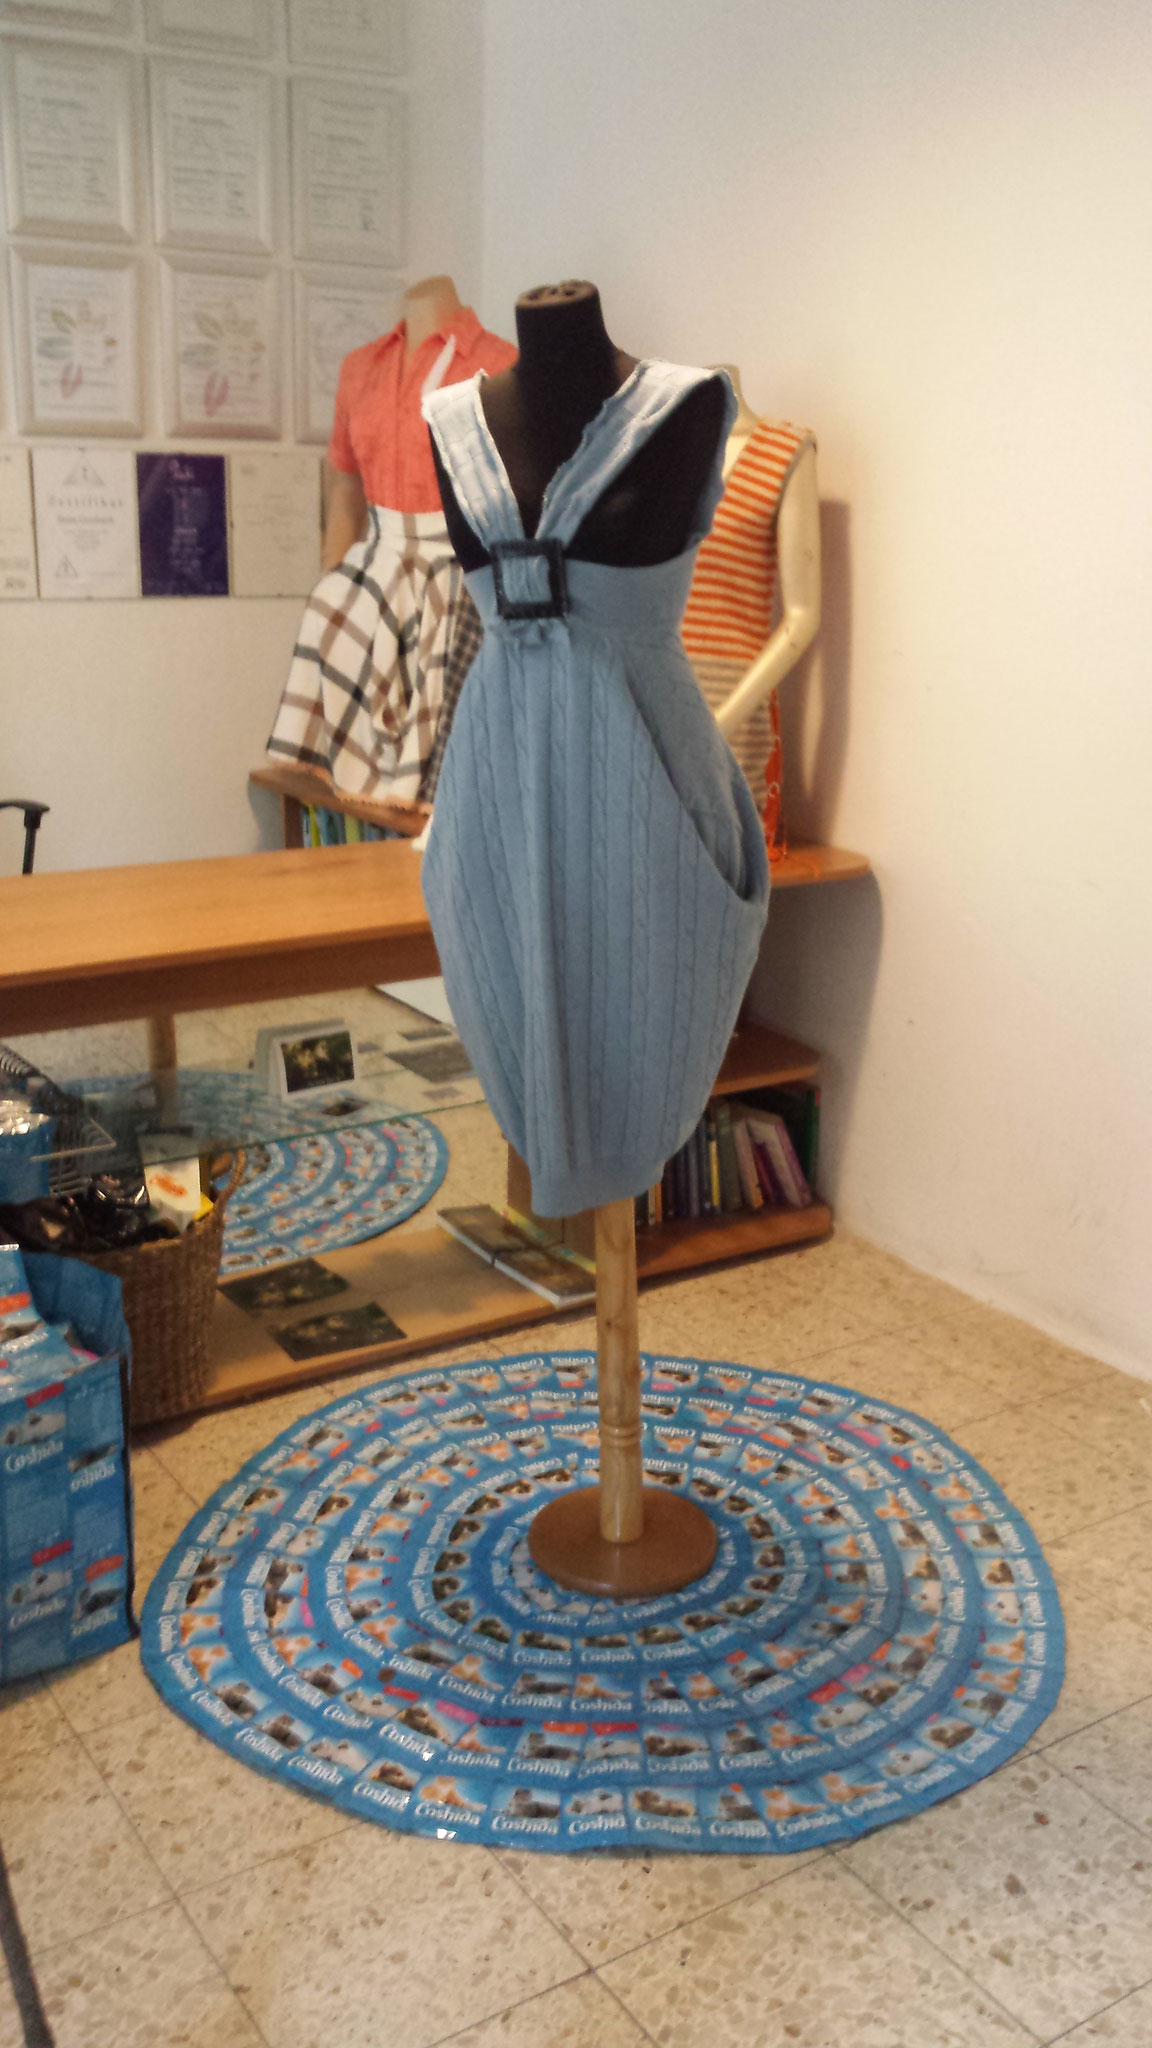 into the blue, designd and made by Beate Gernhardt